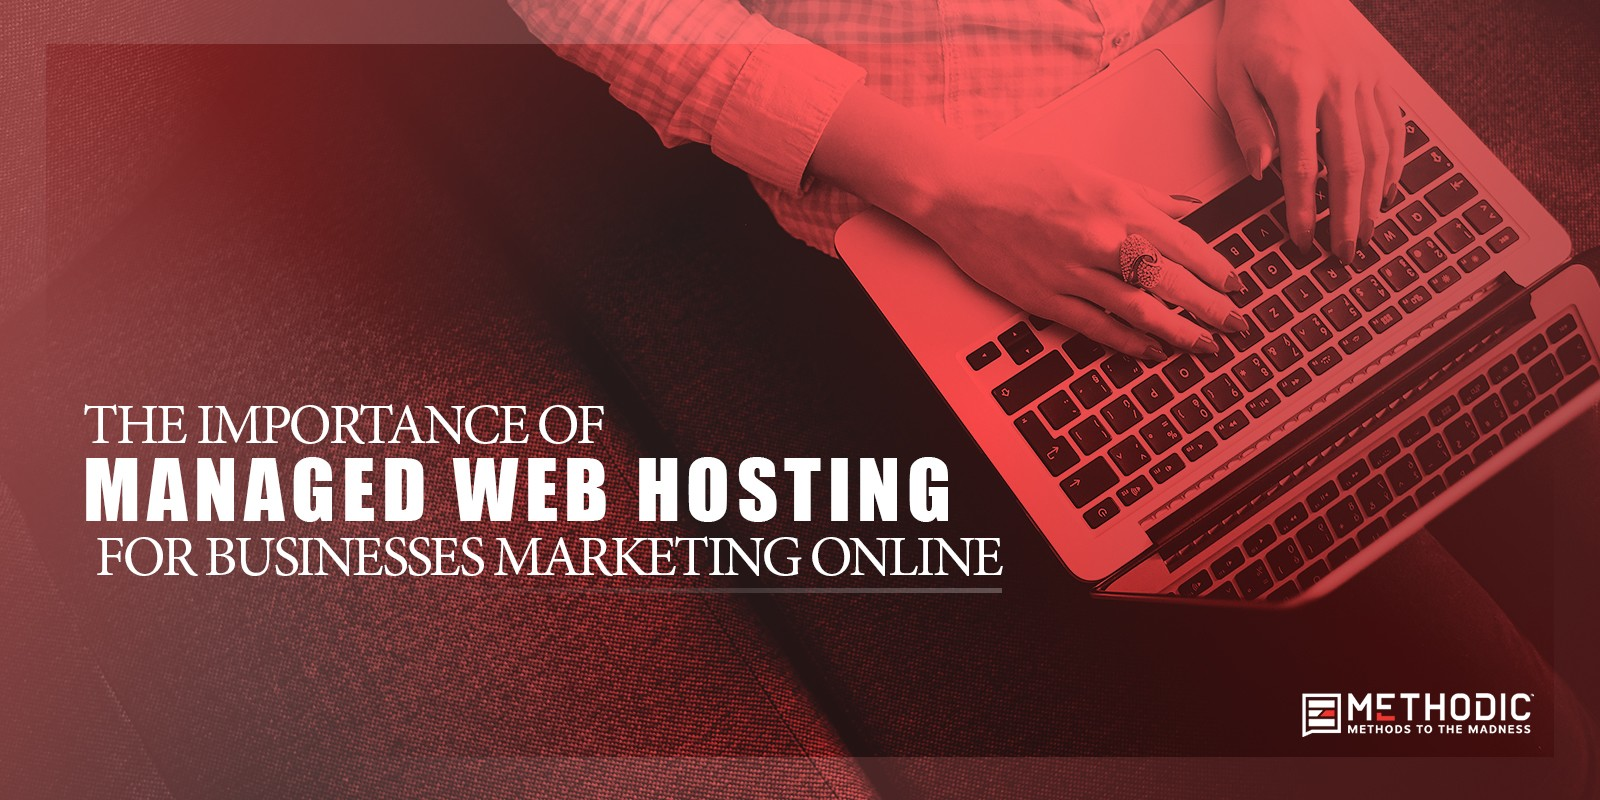 The Importance of Managed Web Hosting for Businesses Marketing Online